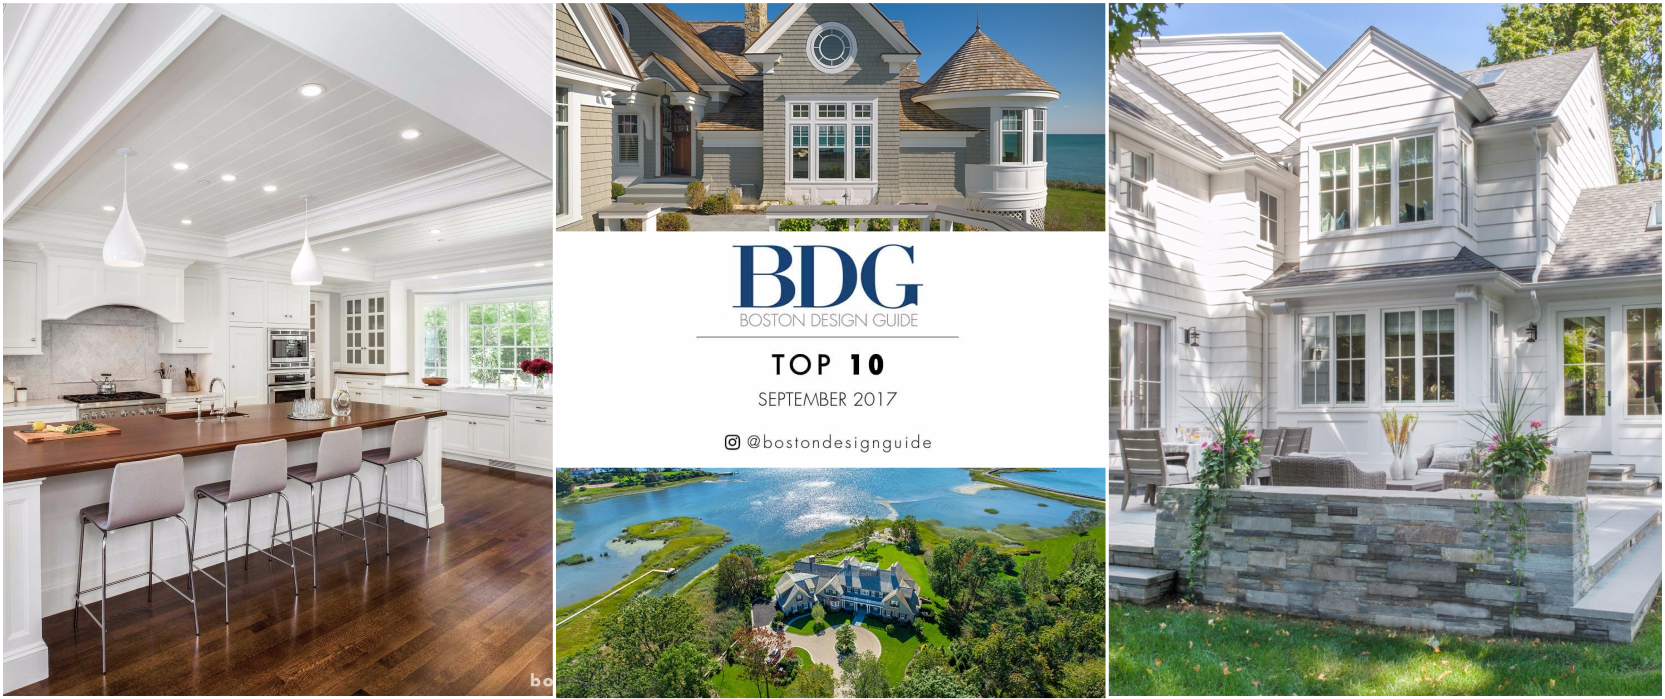 BDG Top Instagram Posts: September 2017 | Boston Design Guide